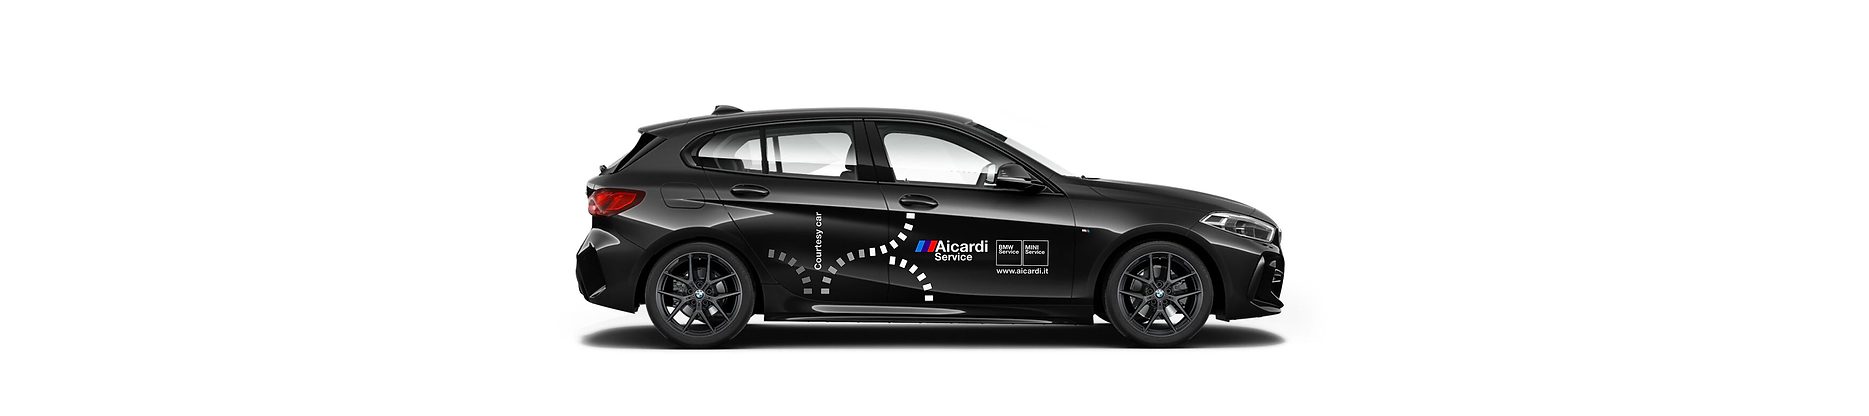 BMW-1-AICARDI-COURTESY-CAR.png